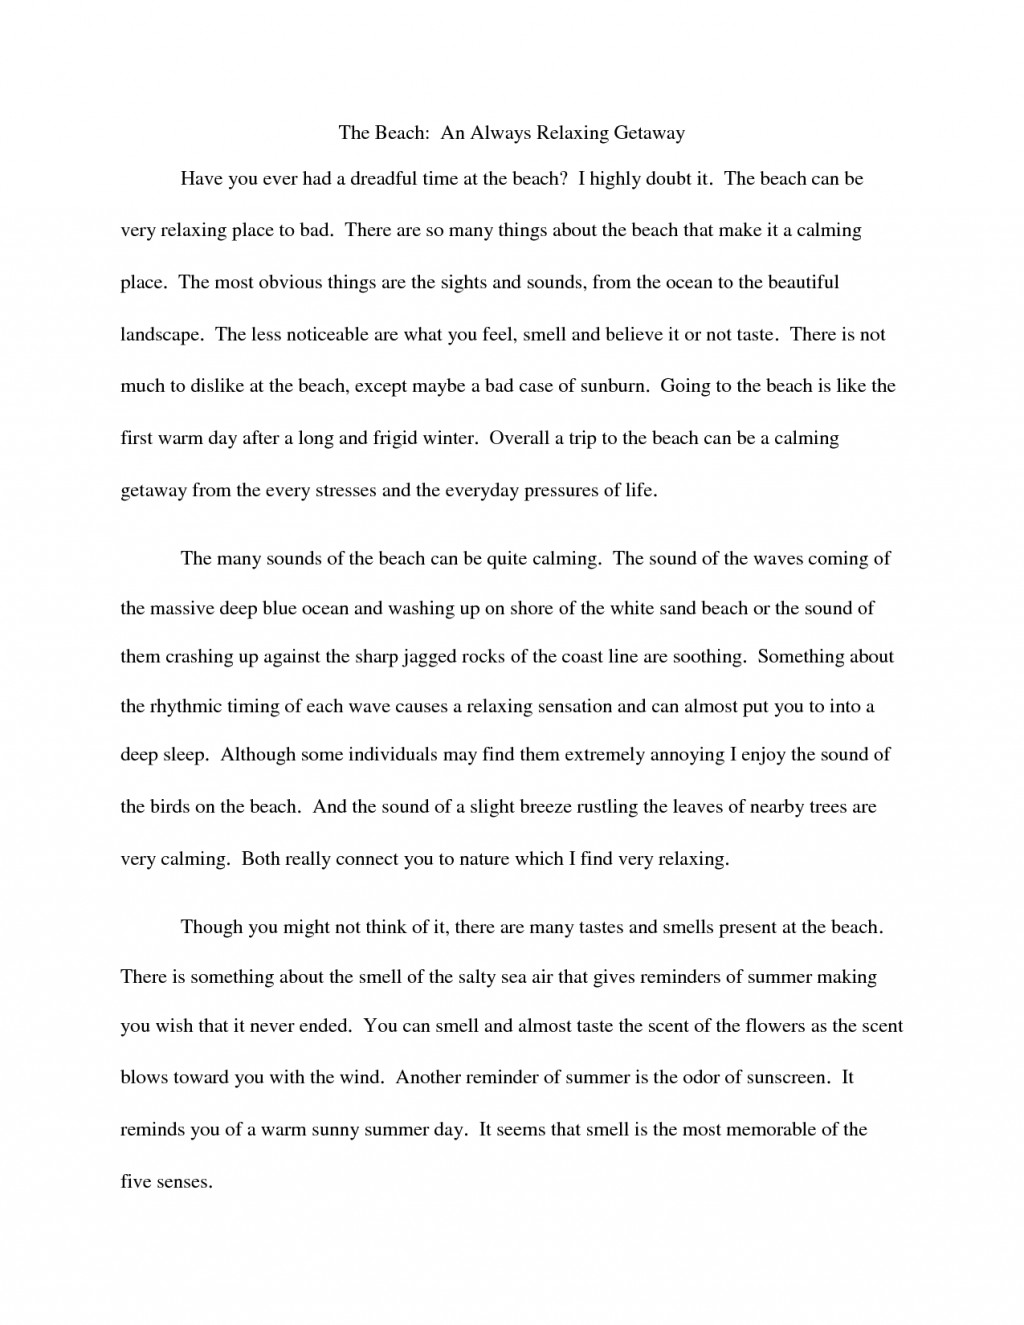 006 Essay Example Descriptive Beach Essays College That Stand Out Odvqltnc Short On The Sunset Paper Barefoot About Walk Vacation Narrative At Night Free Unbelievable Examples Pdf For Grade 7 Writing Large